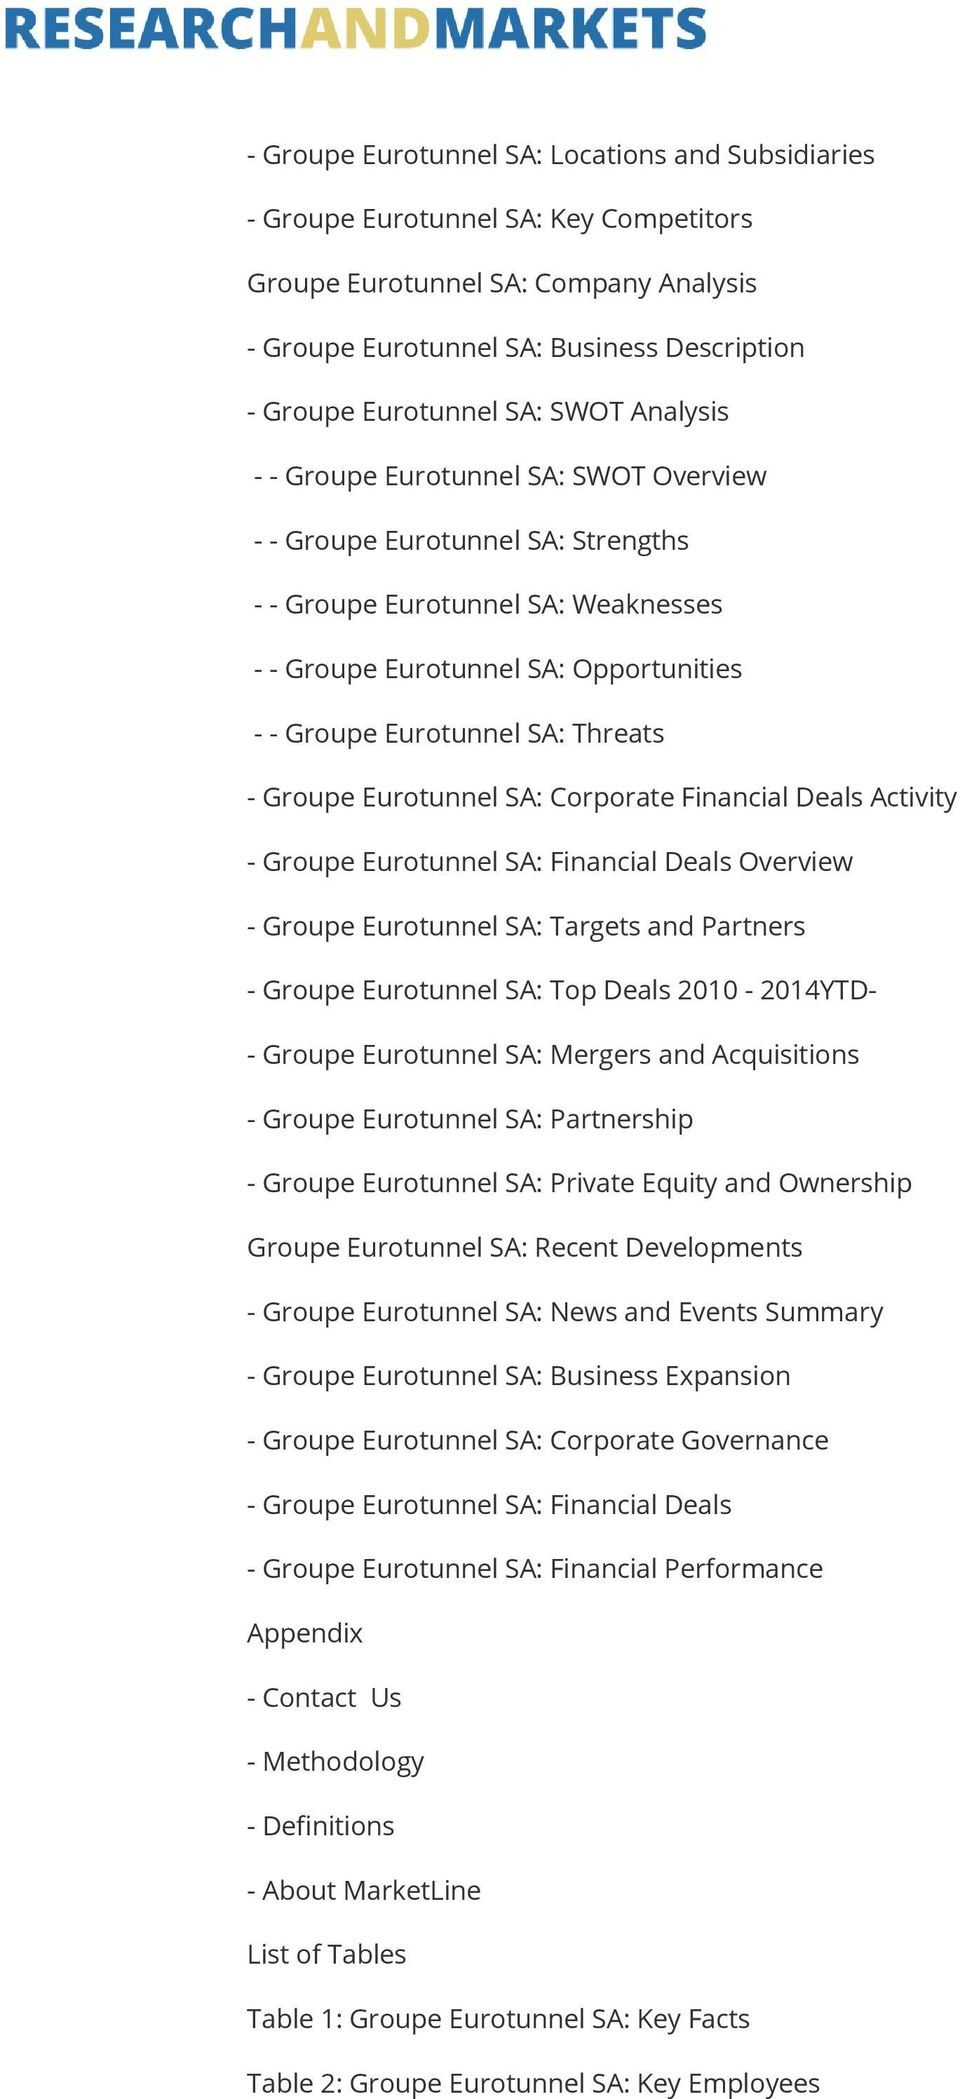 Threats - Groupe Eurotunnel SA: Corporate Financial Deals Activity - Groupe Eurotunnel SA: Financial Deals Overview - Groupe Eurotunnel SA: Targets and Partners - Groupe Eurotunnel SA: Top Deals